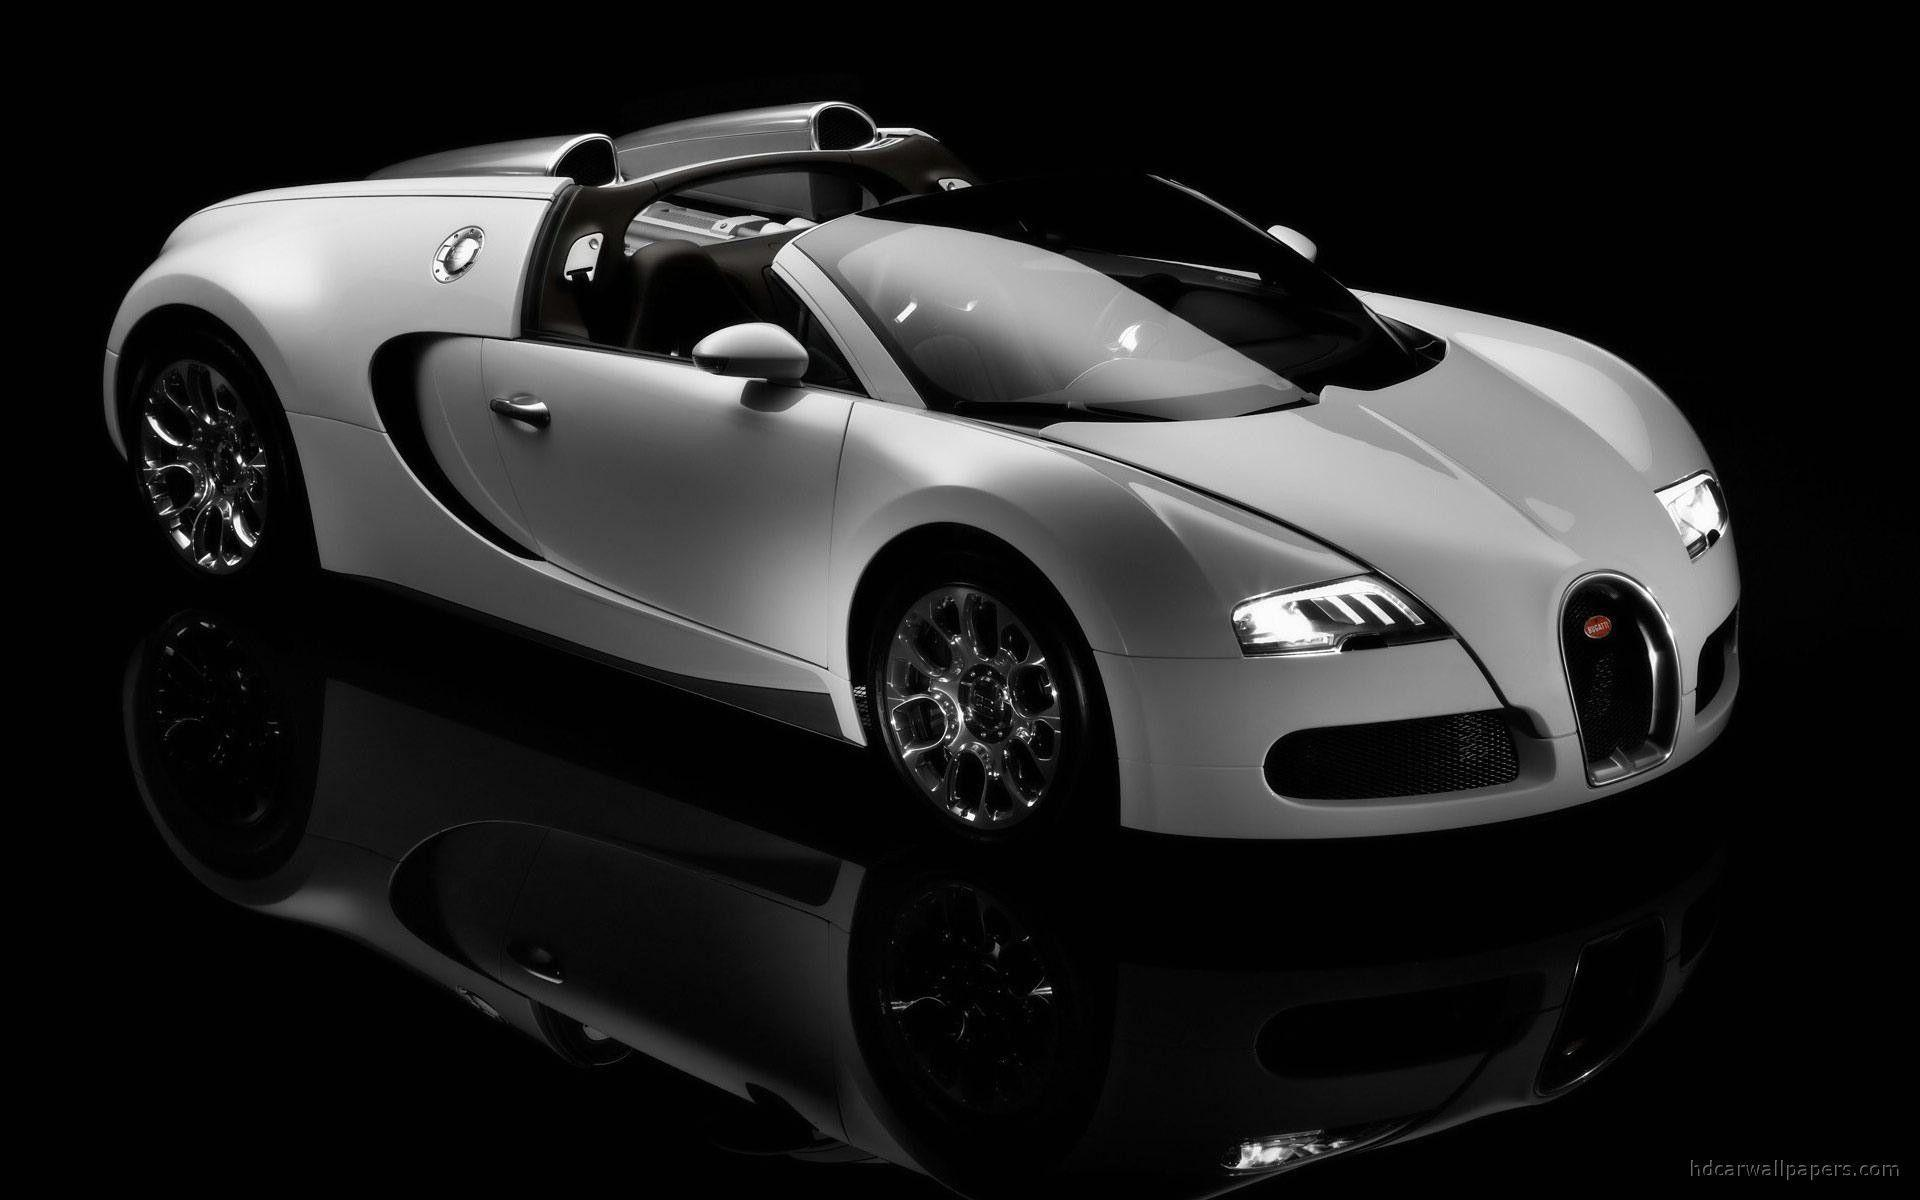 New Bugatti Veyron Wallpapers Hd